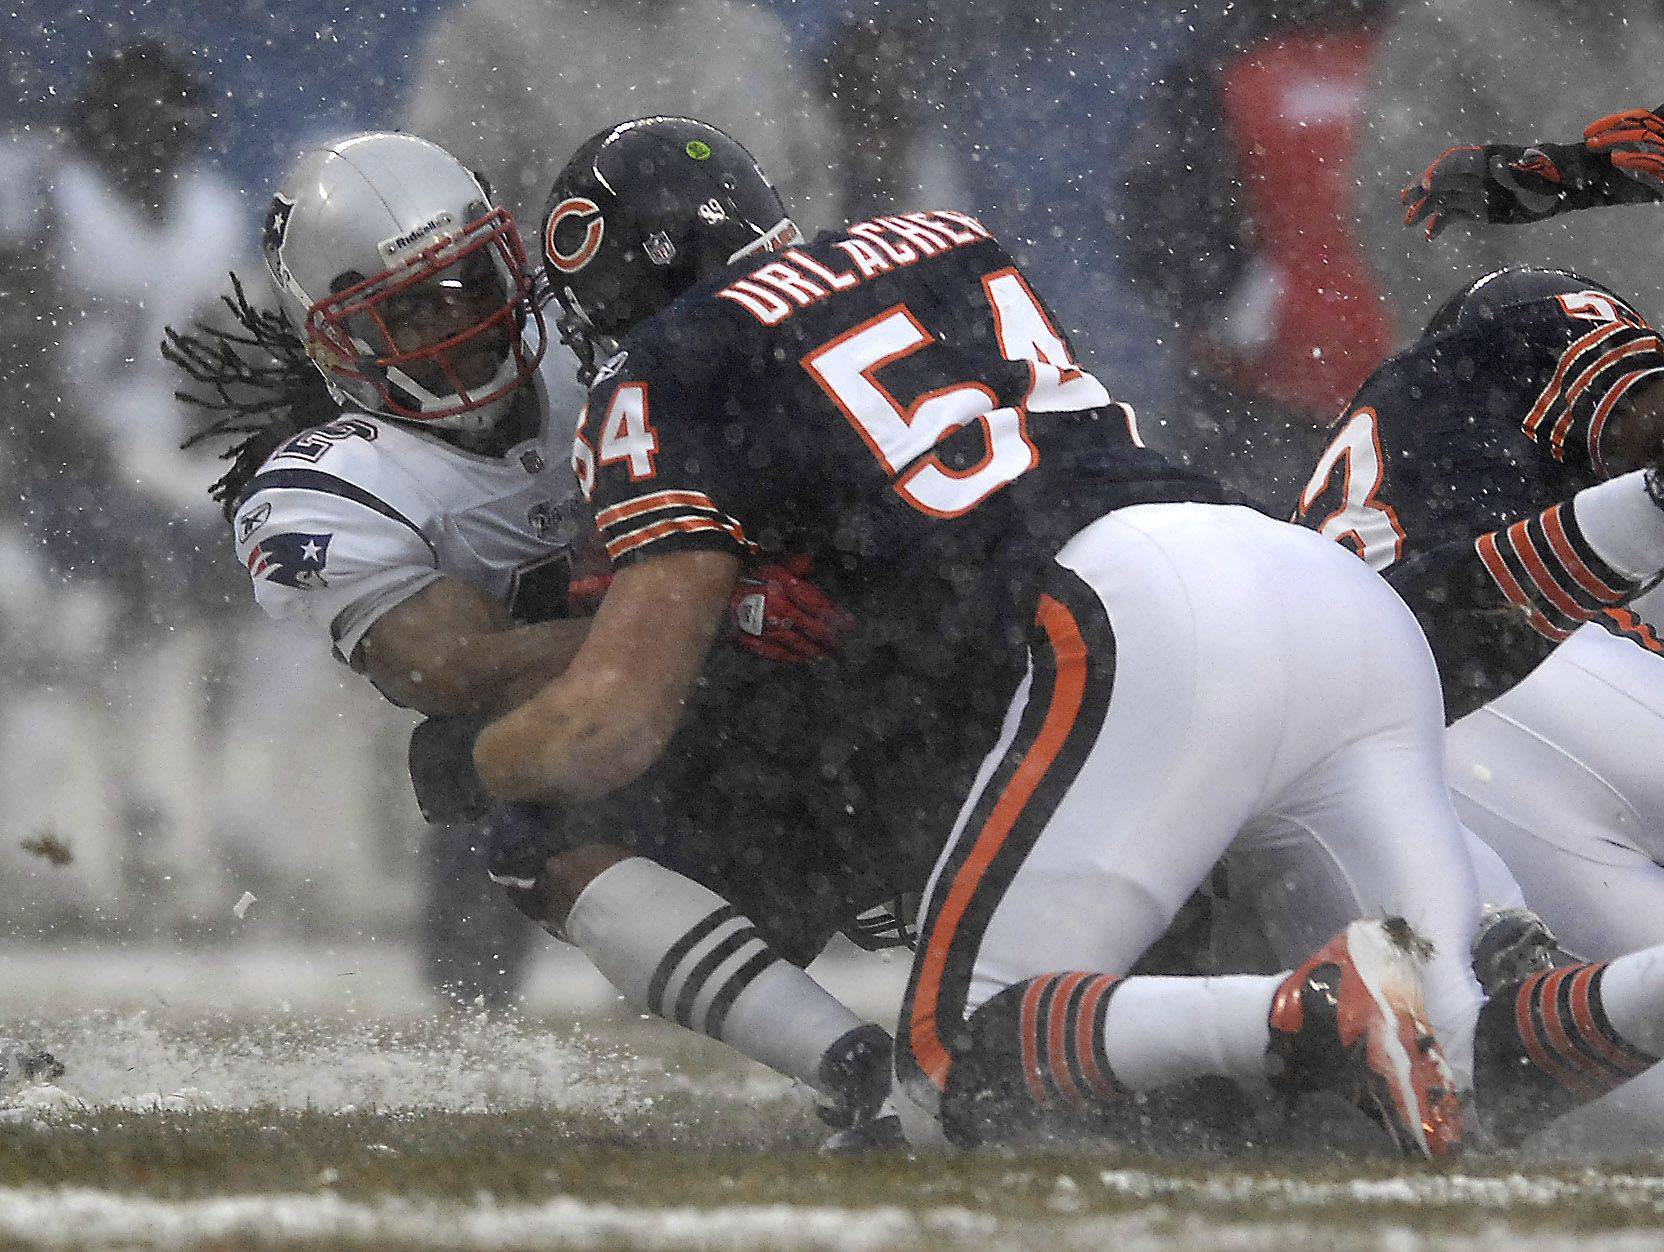 Chicago Bears linebacker Brian Urlacher tackles New England Patriots running back BenJarvus Green-Ellis.